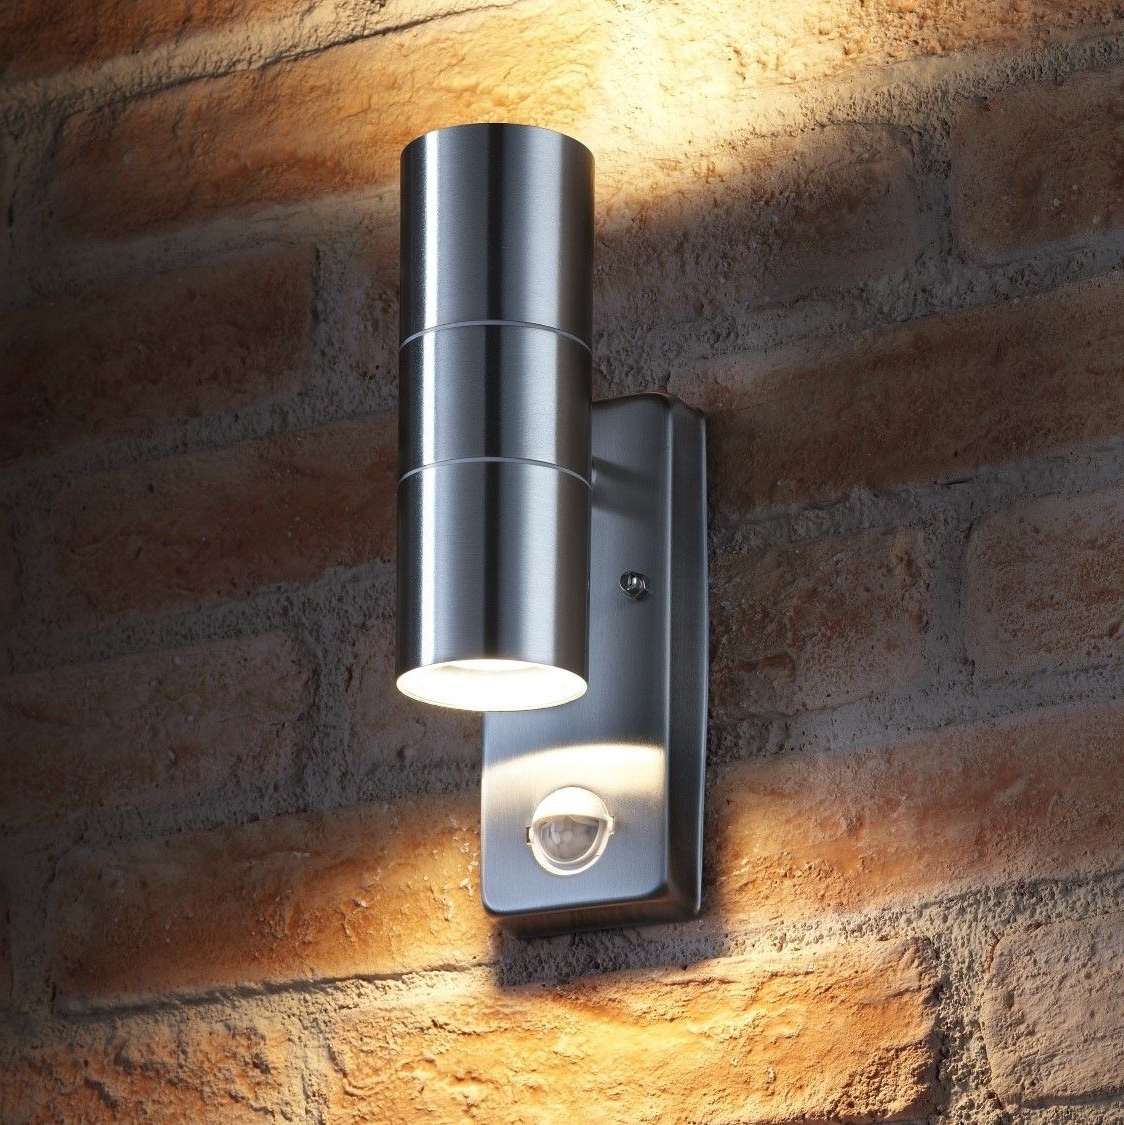 Latest Auraglow Pir Motion Sensor Stainless Steel Up & Down Outdoor Wall With Outdoor Led Wall Lights With Pir Sensor (View 6 of 20)